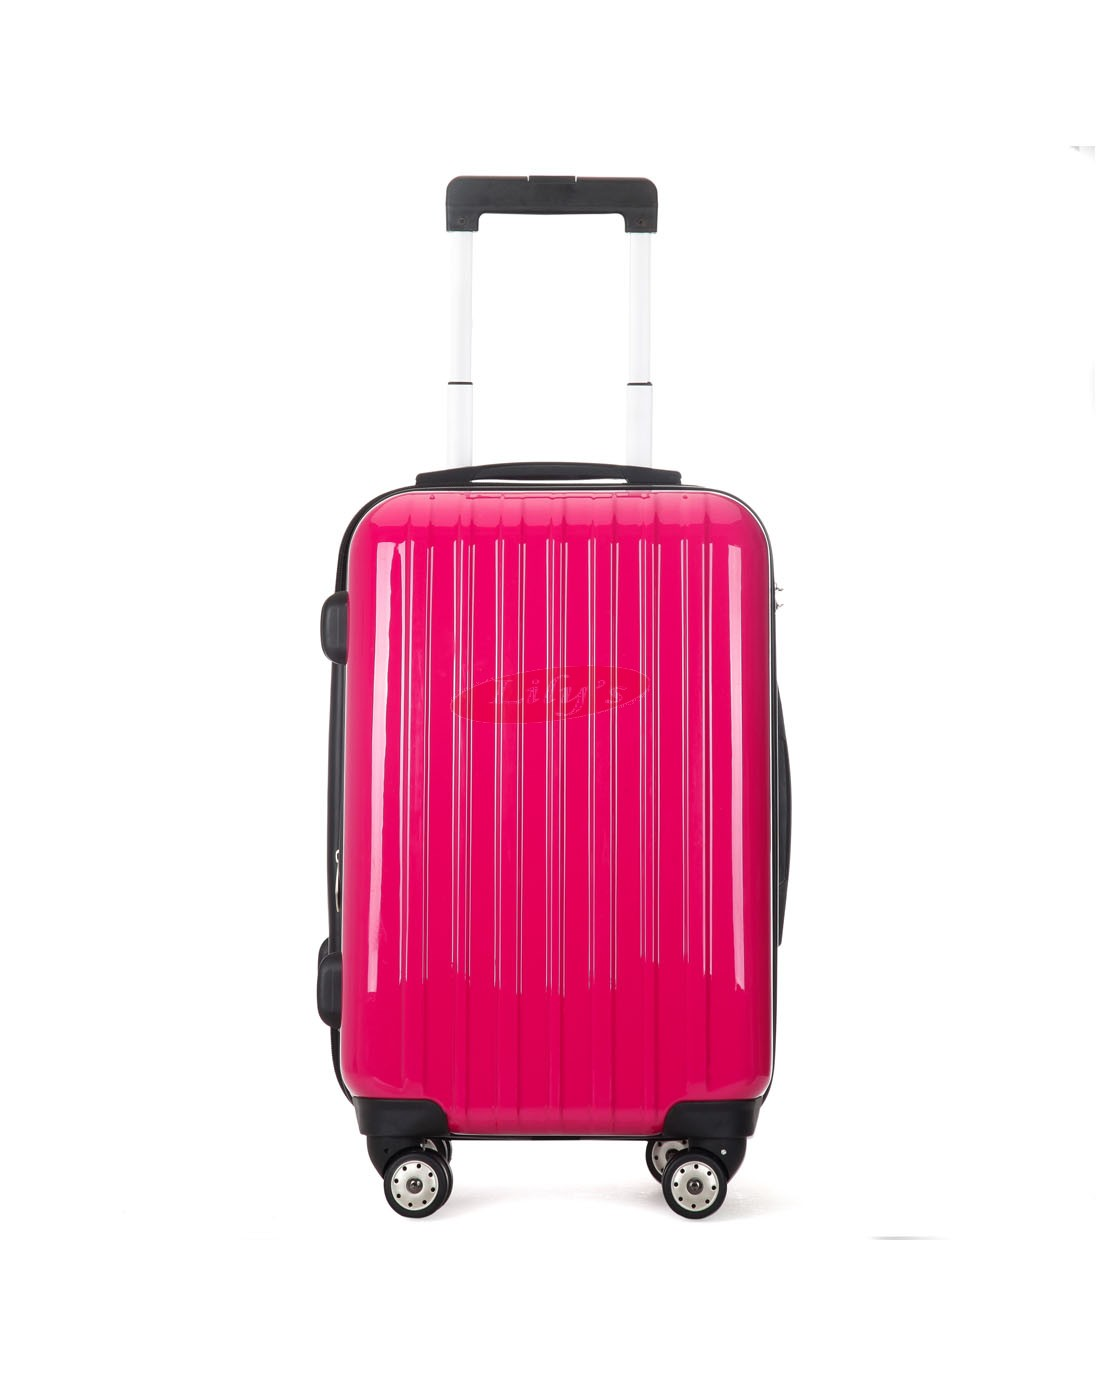 "AIRCROSS 2PC Set Luggage A55 Rose Hard Case Expandable Trolley Luggage - 20""24"""